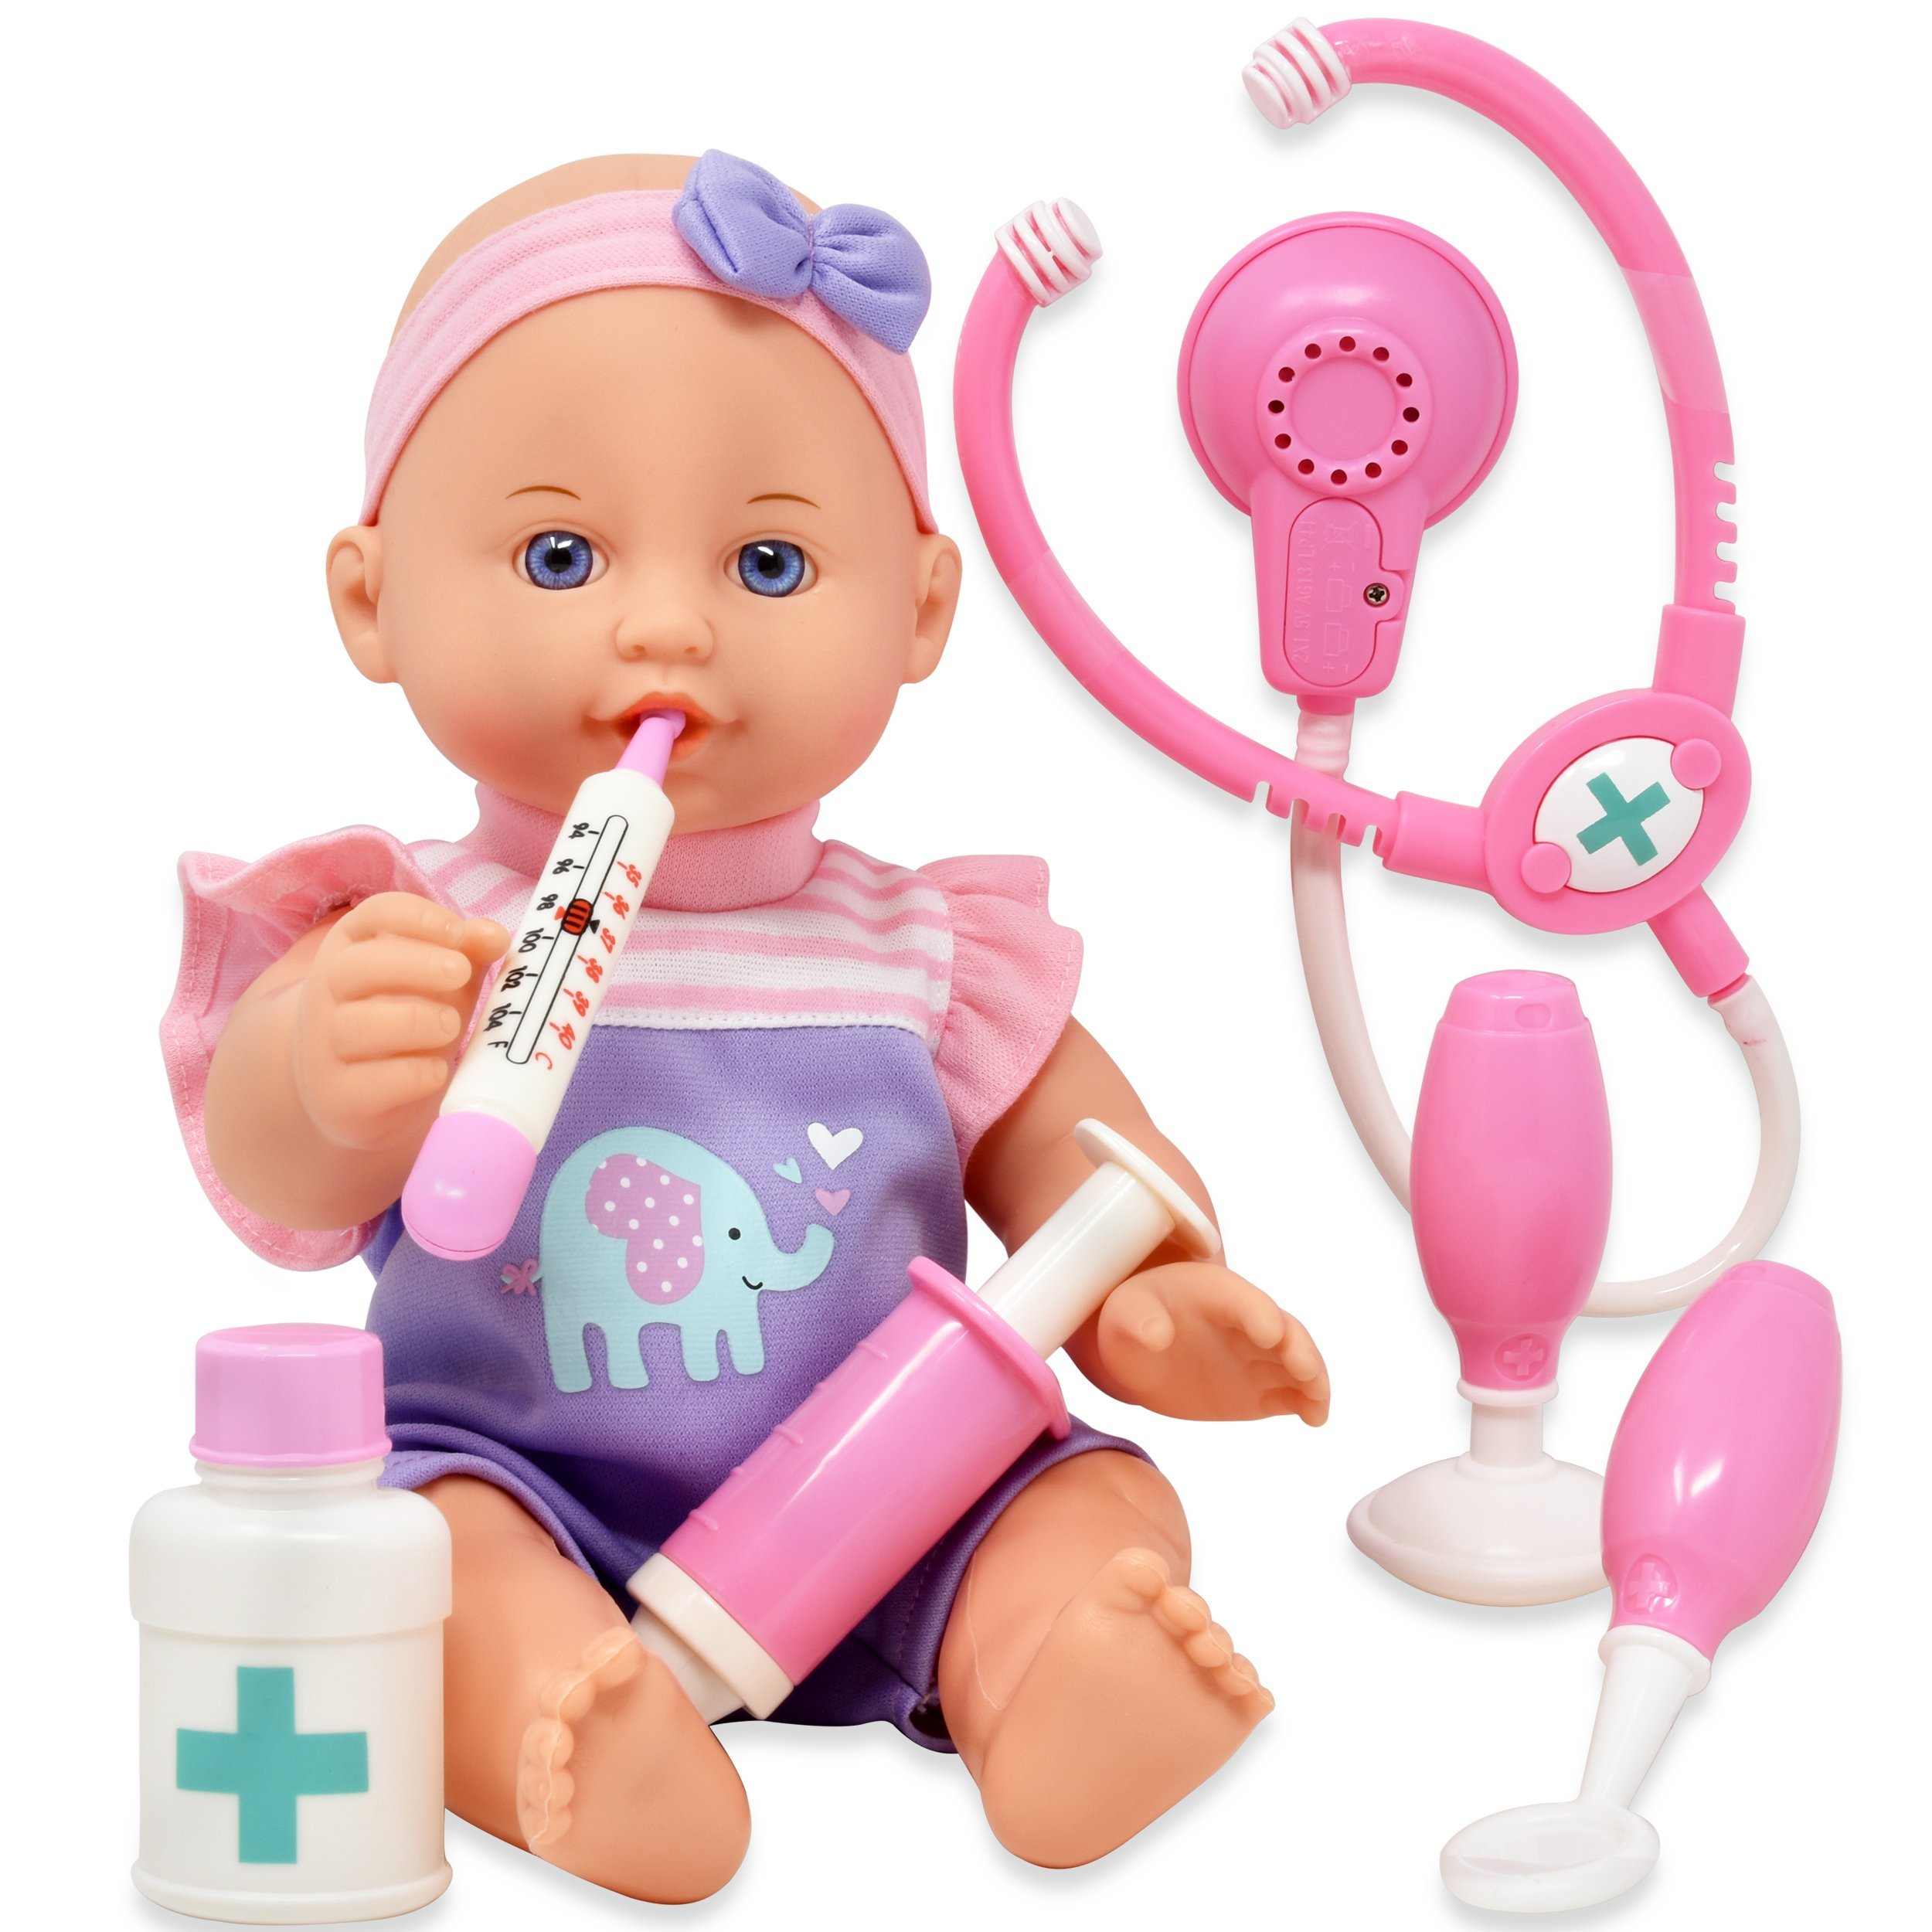 Pretend Play Medical Set, Baby Doll Doctor Kit for Kids Includes 12 Inch Doll, Talking Stethoscope, Thermometer, Needle, Medicine Bottle, Stick and Hammer-Complete Accessories for Toddlers Boy Girl by Dolls To Play